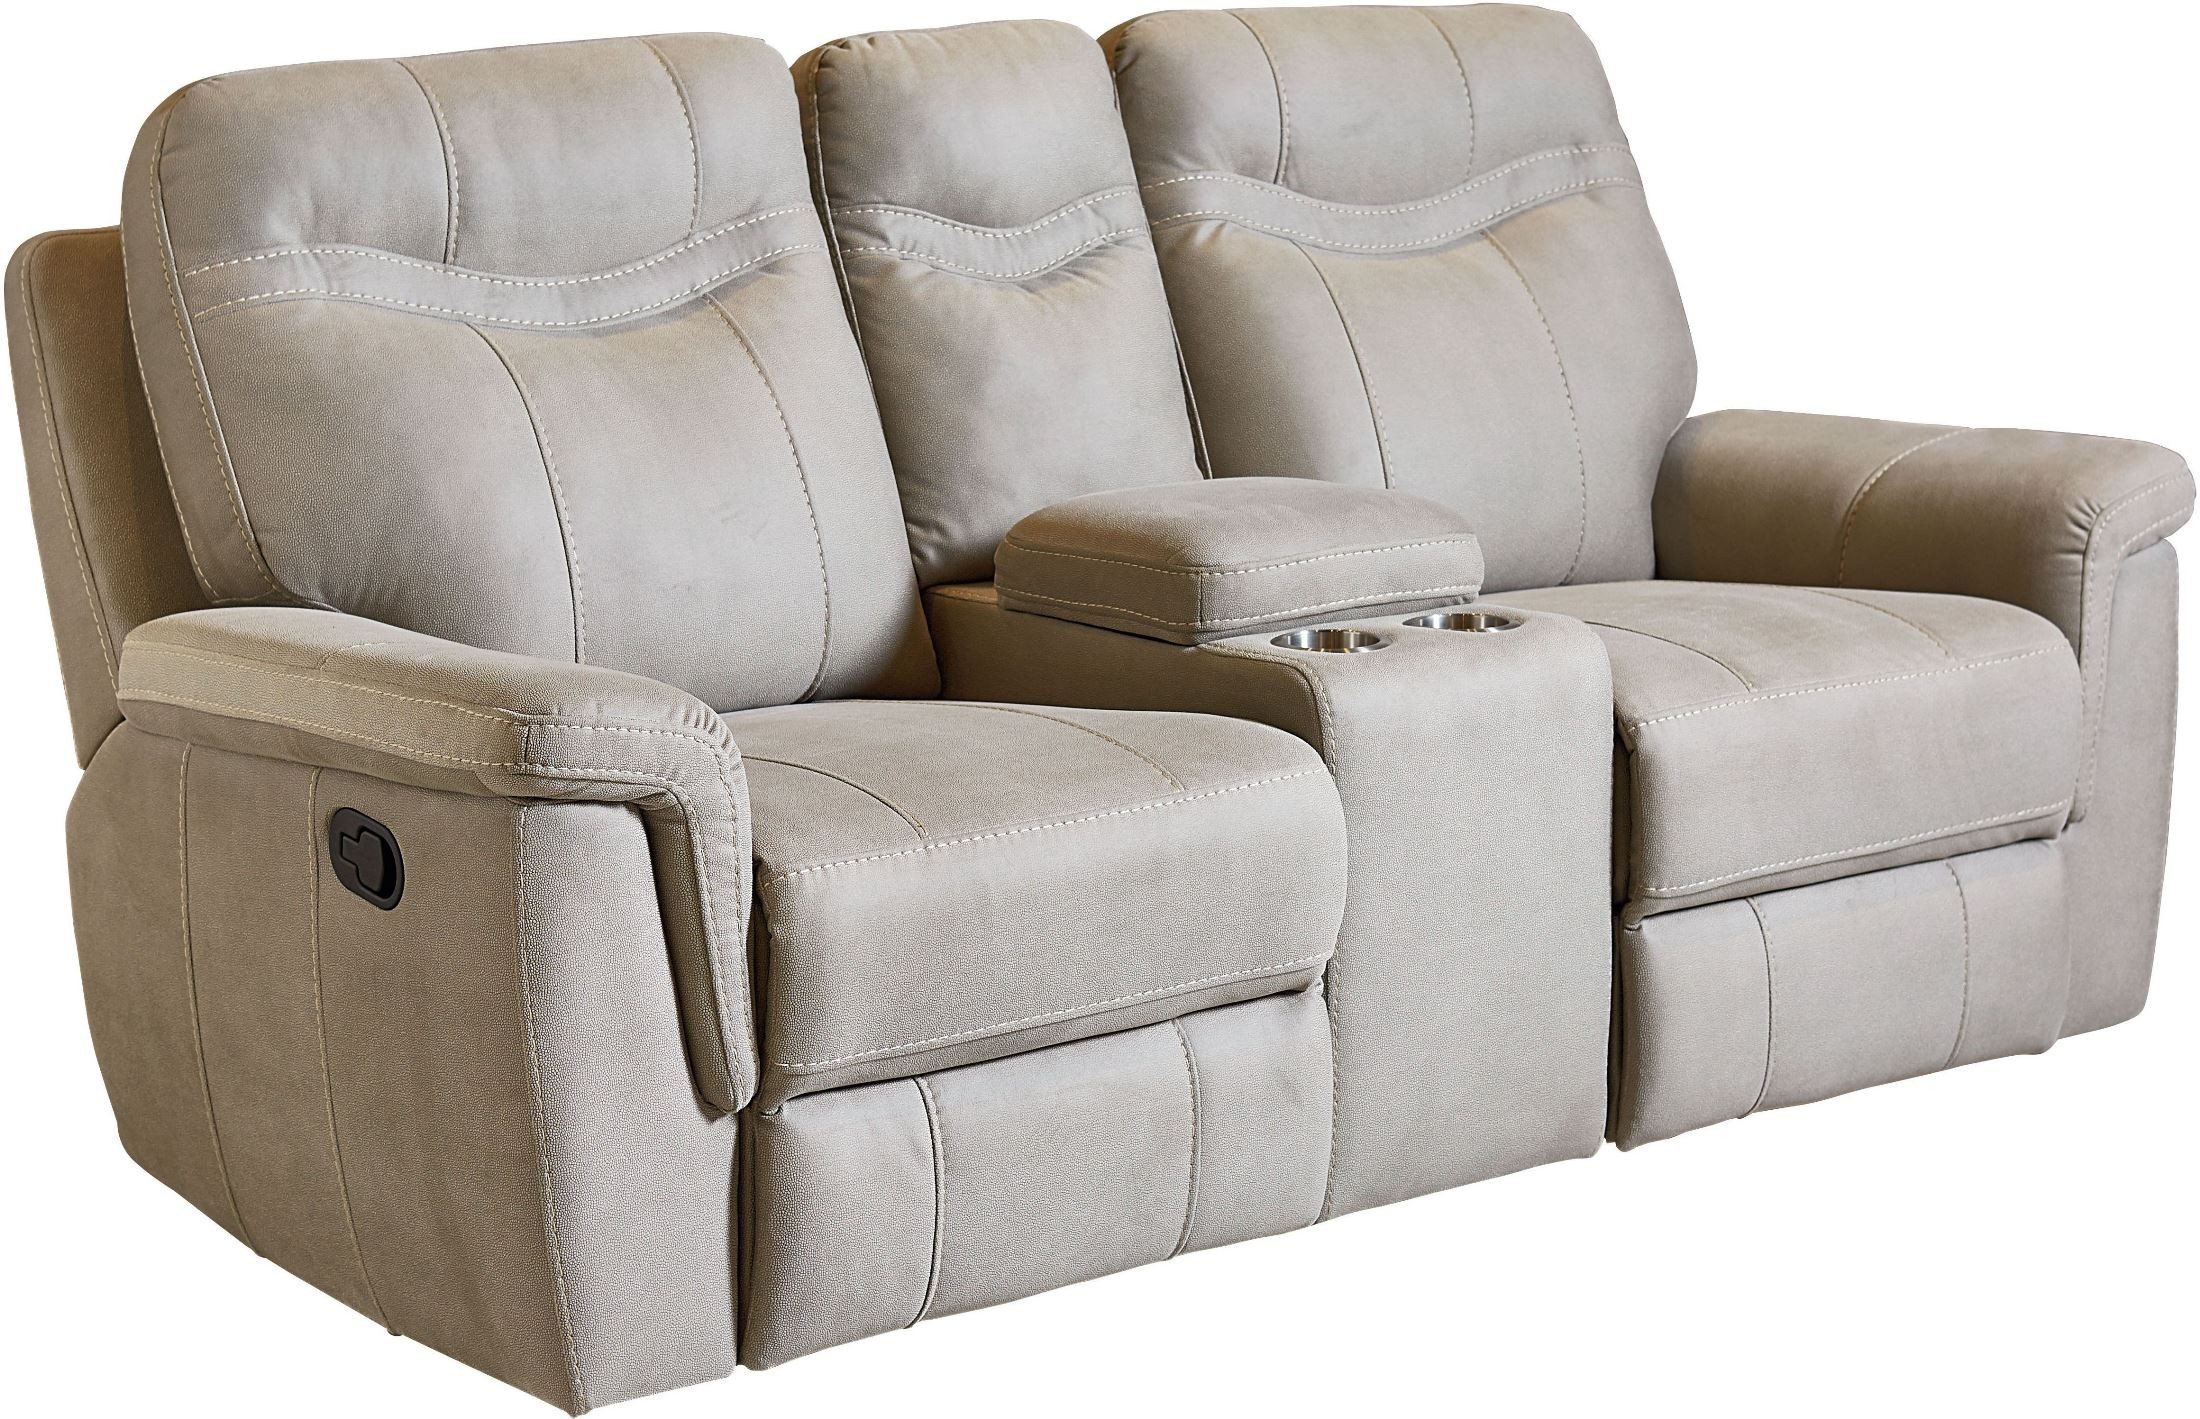 belfort trim vega power products bx item height loveseat vegapower threshold furniture width reclining palliser console